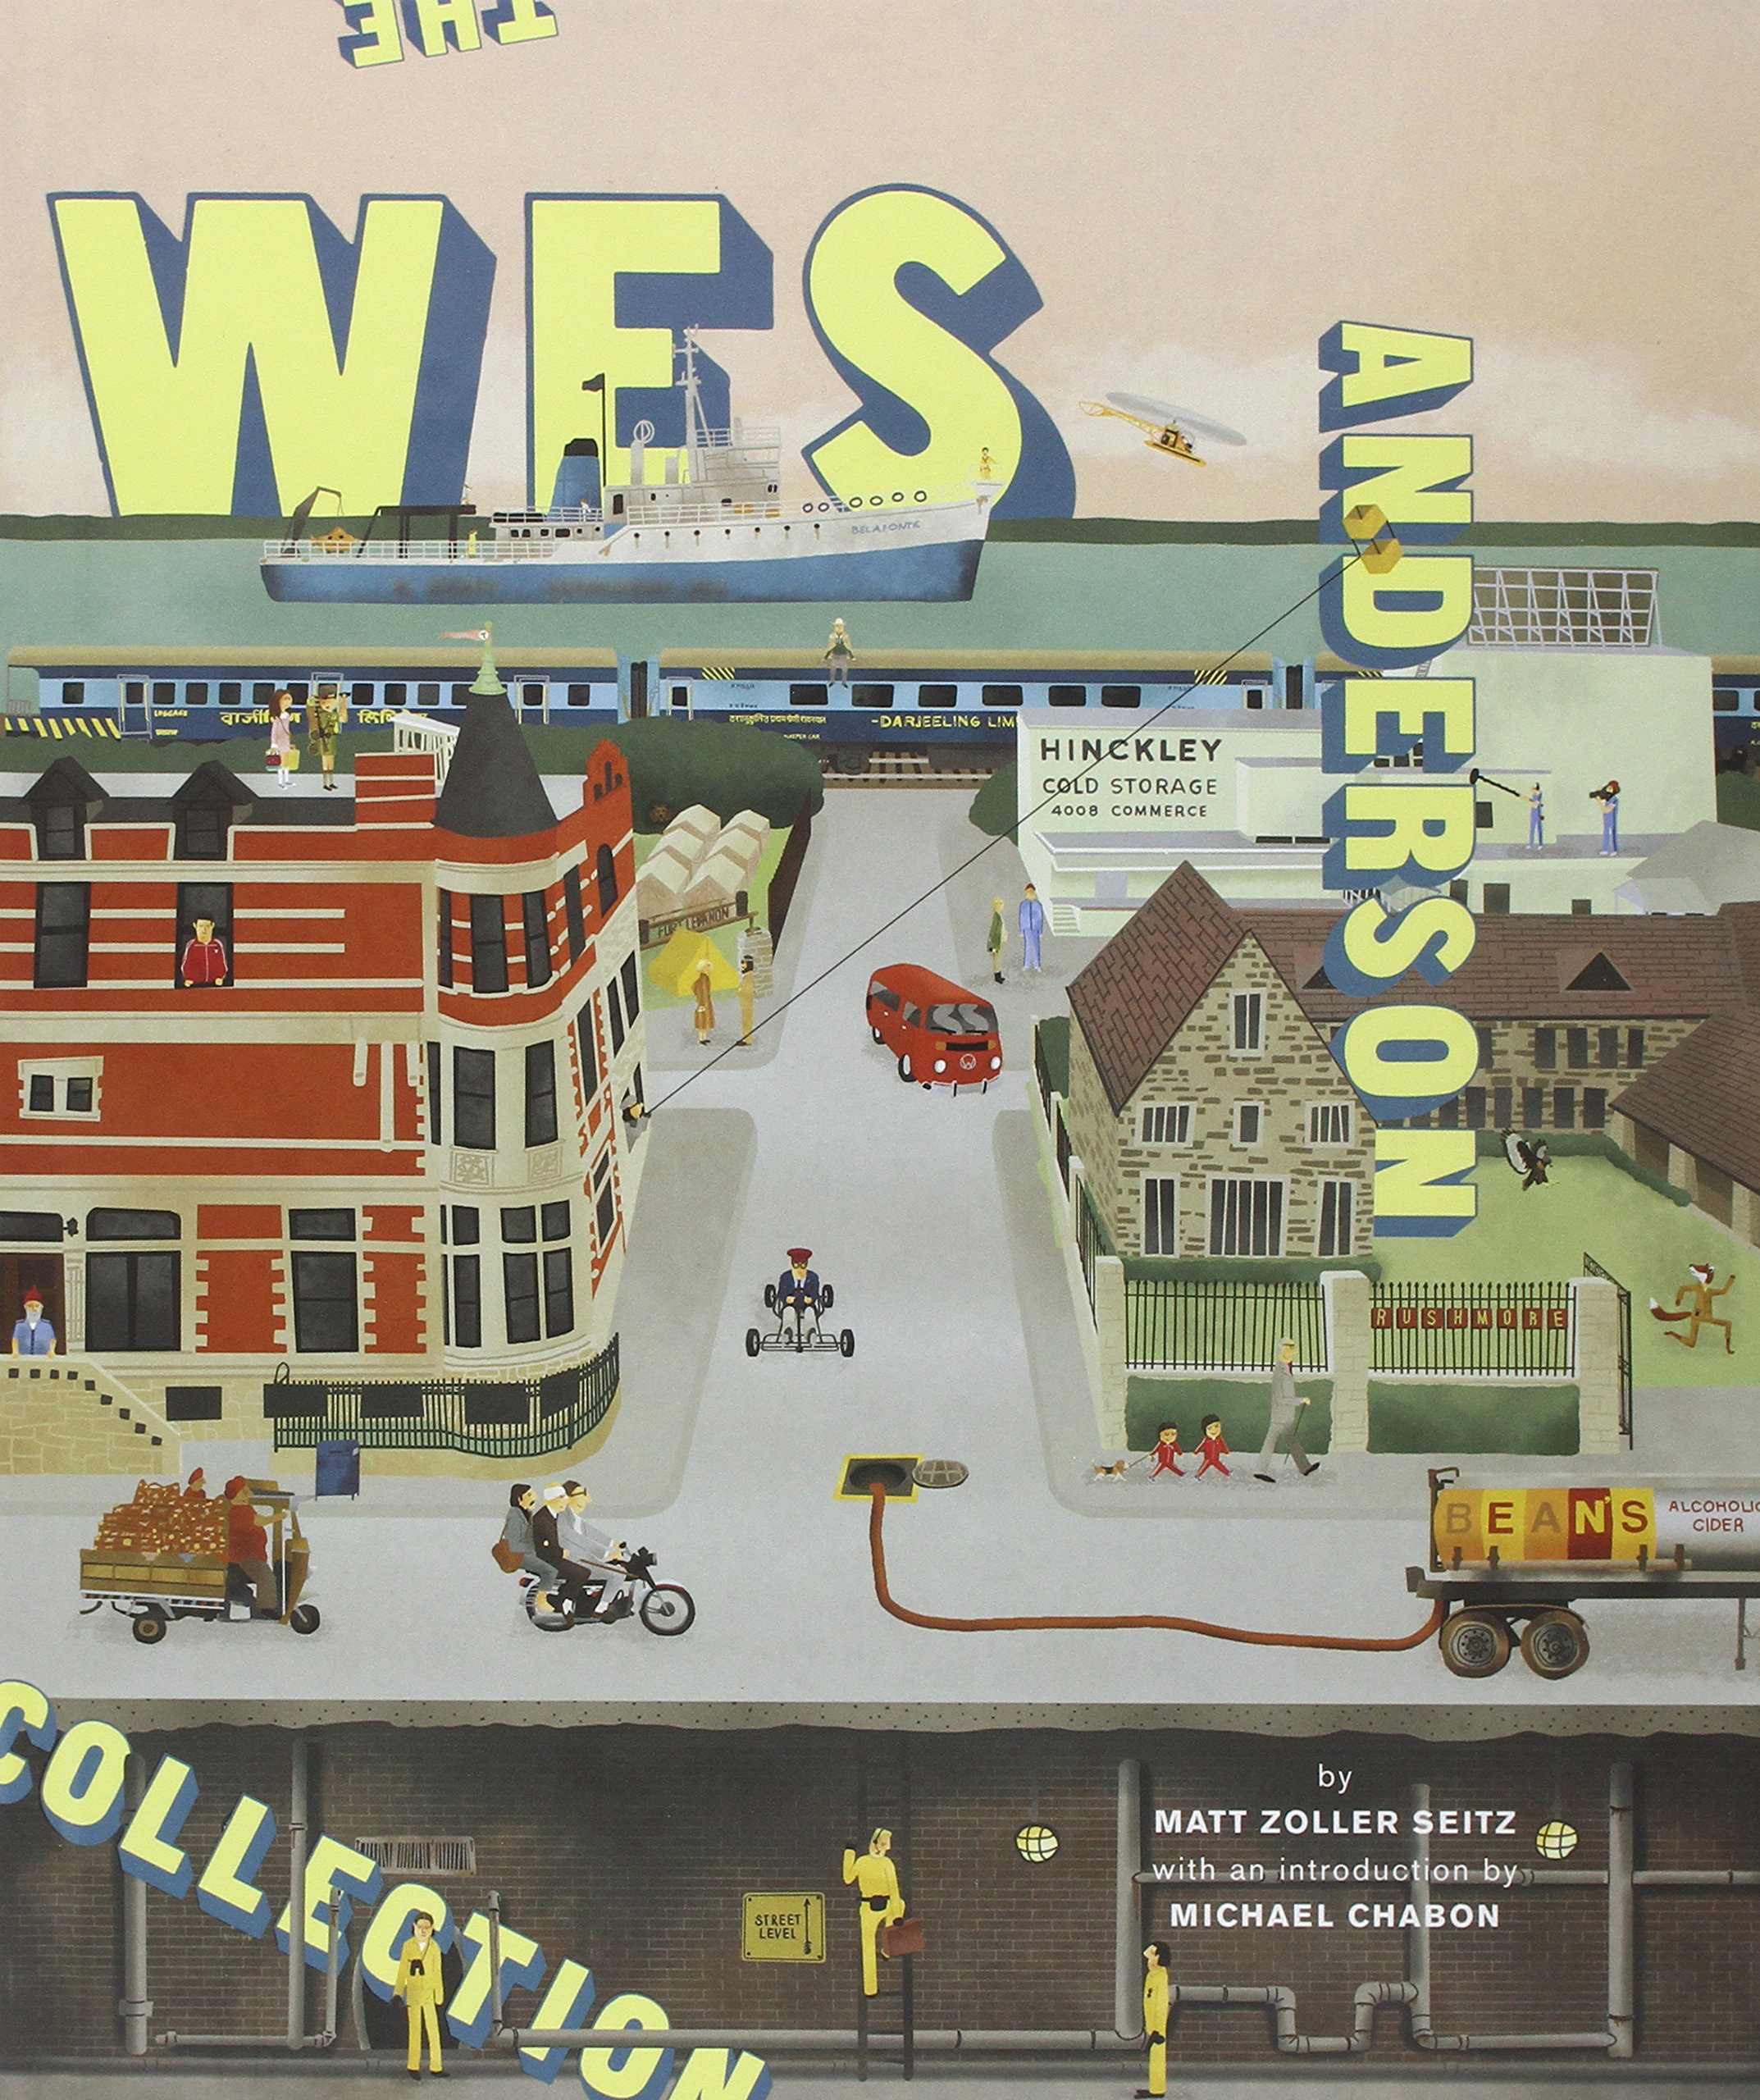 Review: Matt Zoller Seitz's The Wes Anderson Collection